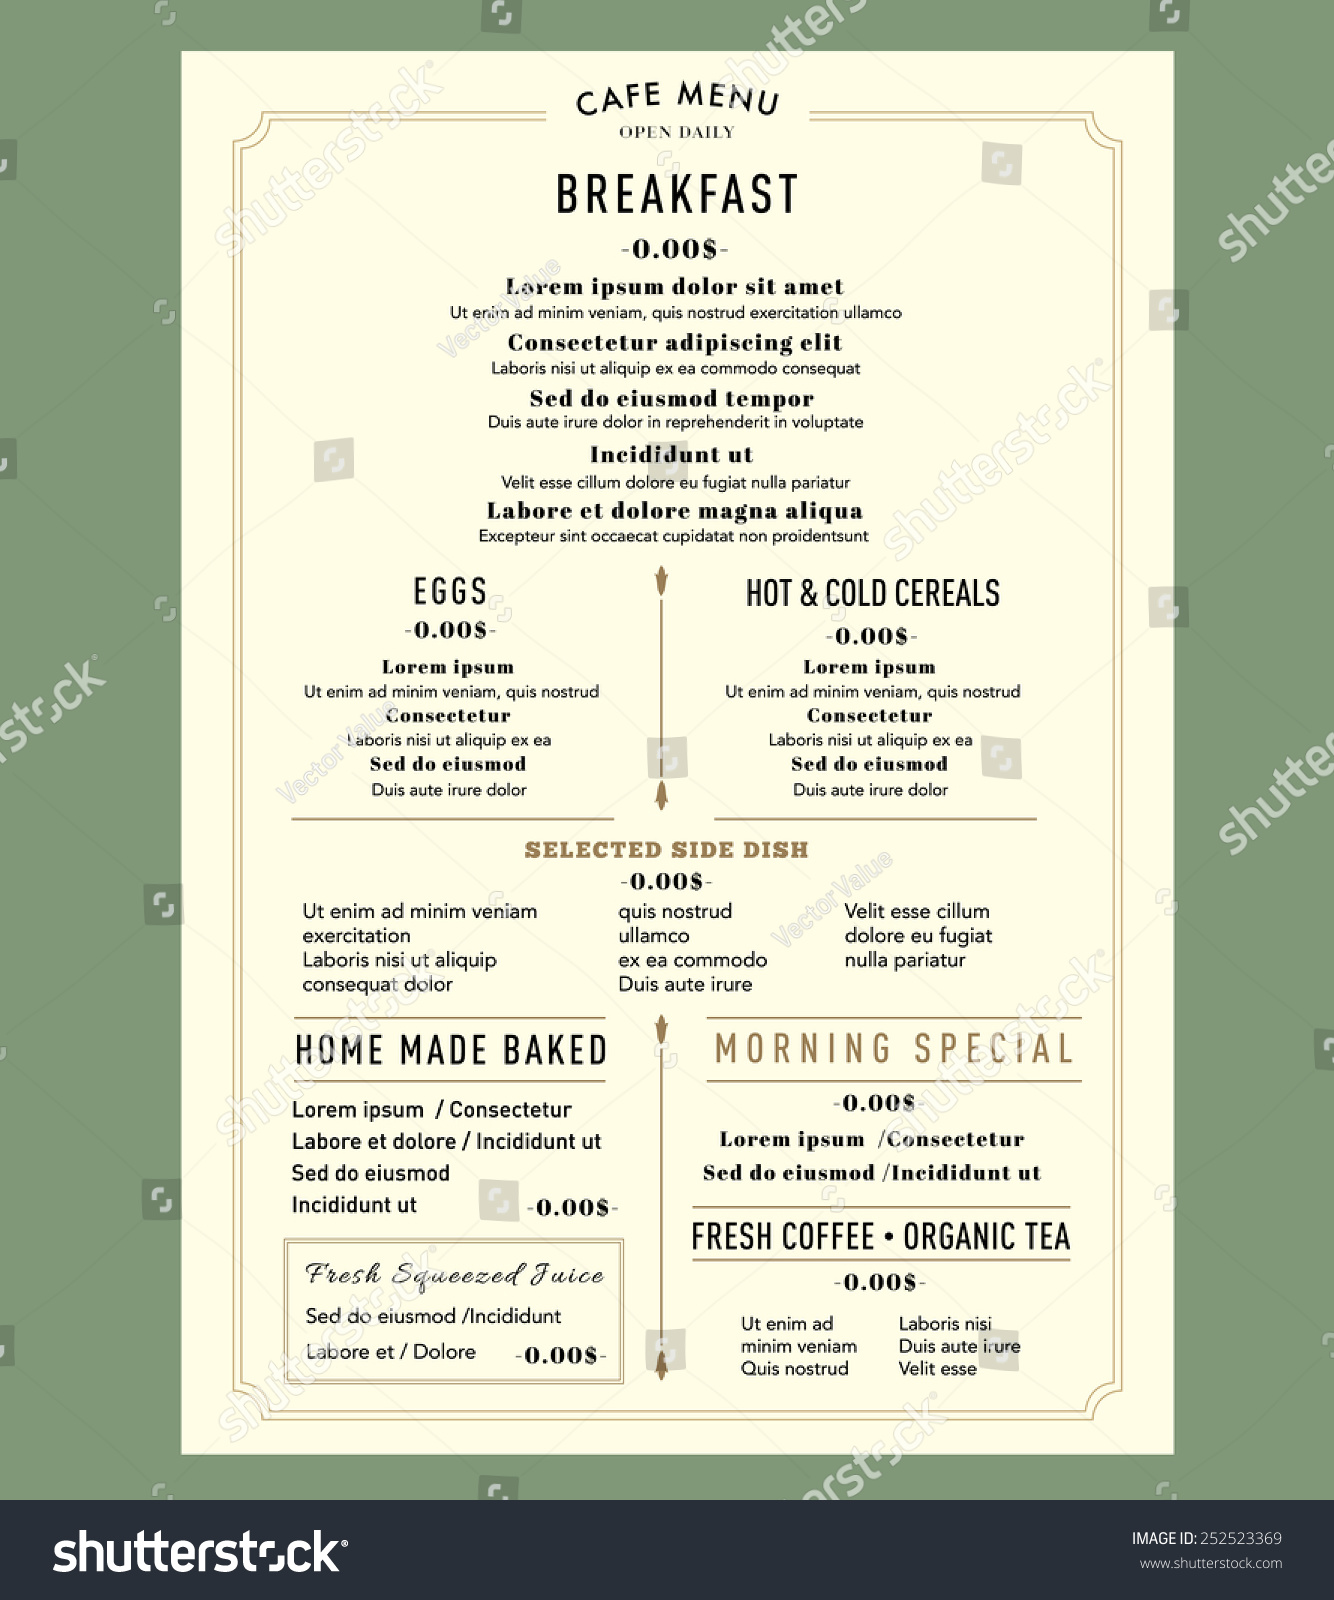 templates for restaurant menus - menu design breakfast restaurant cafe graphic stock vector